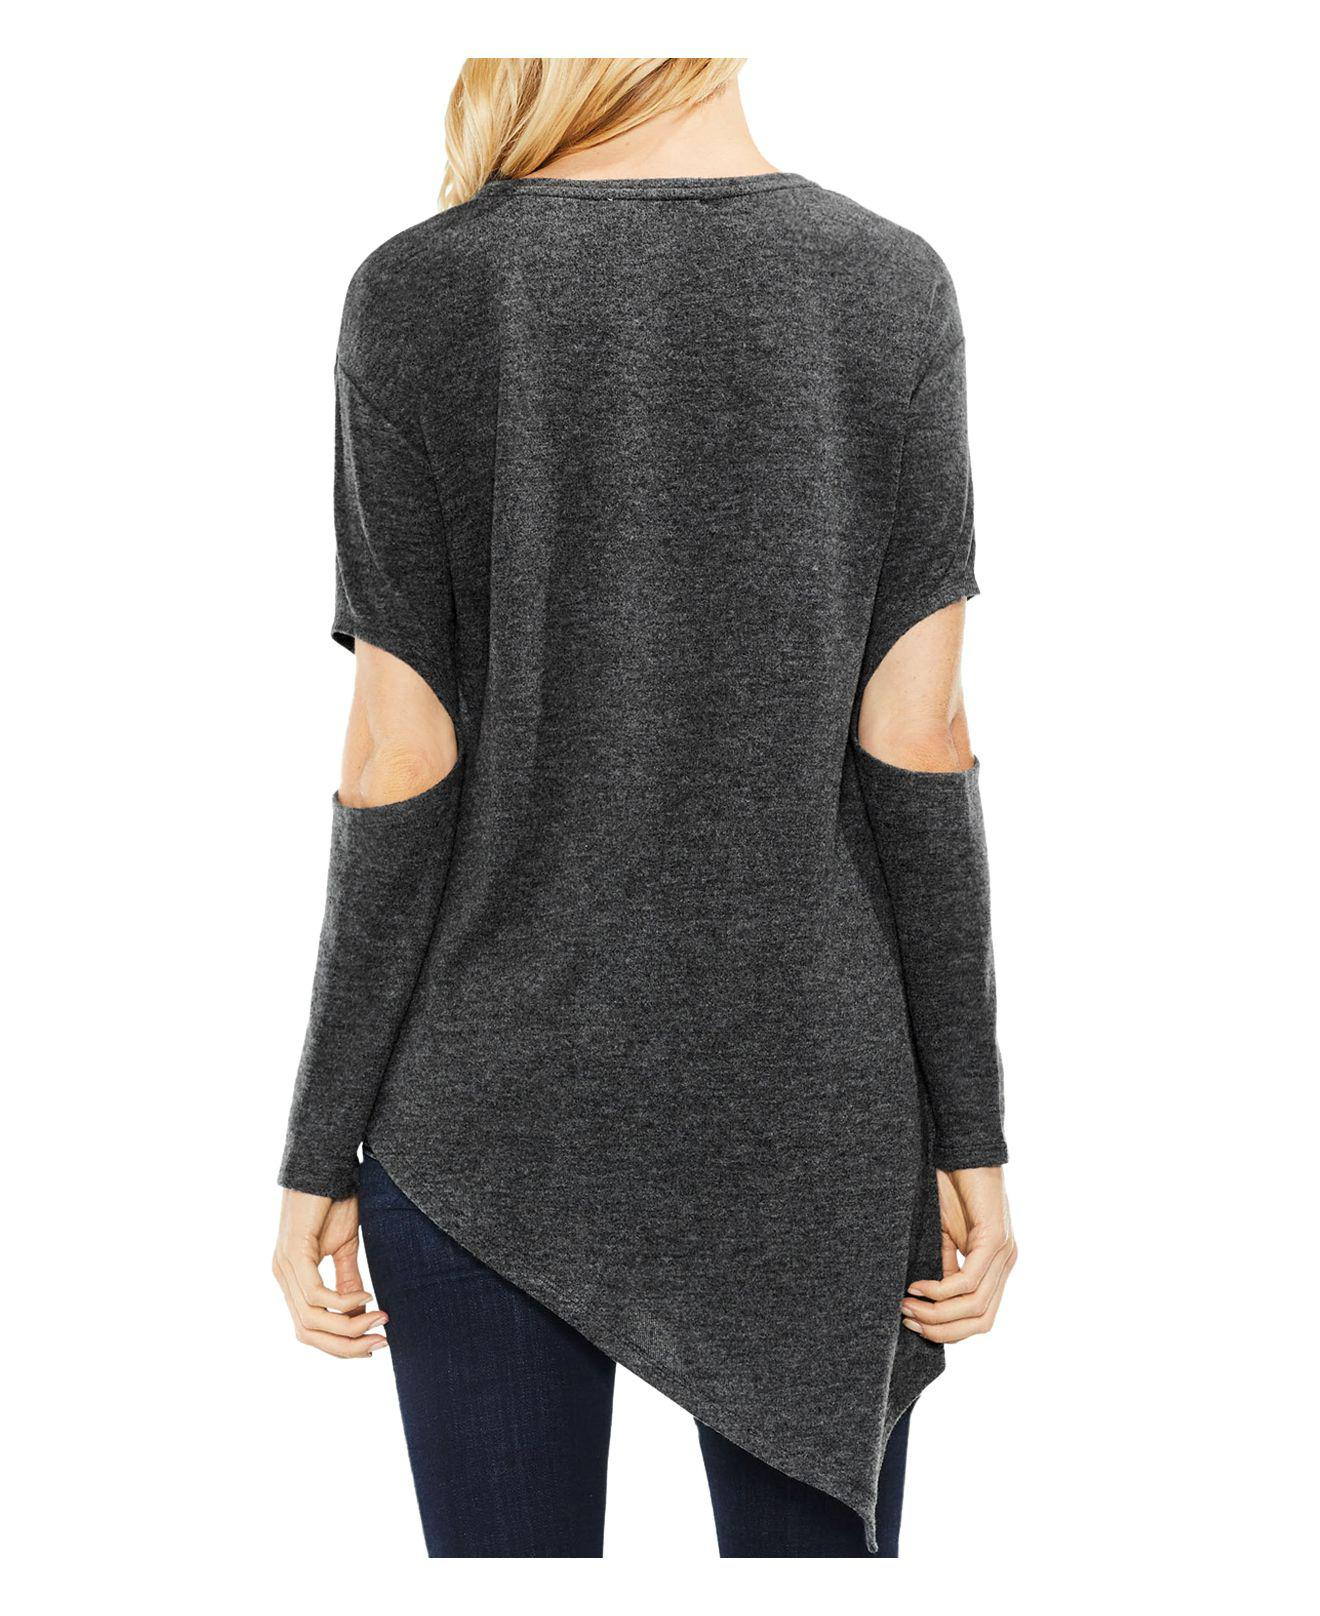 Official Site Vince asymmetric cut out sweater Clearance 100% Guaranteed 0eWe6CZ